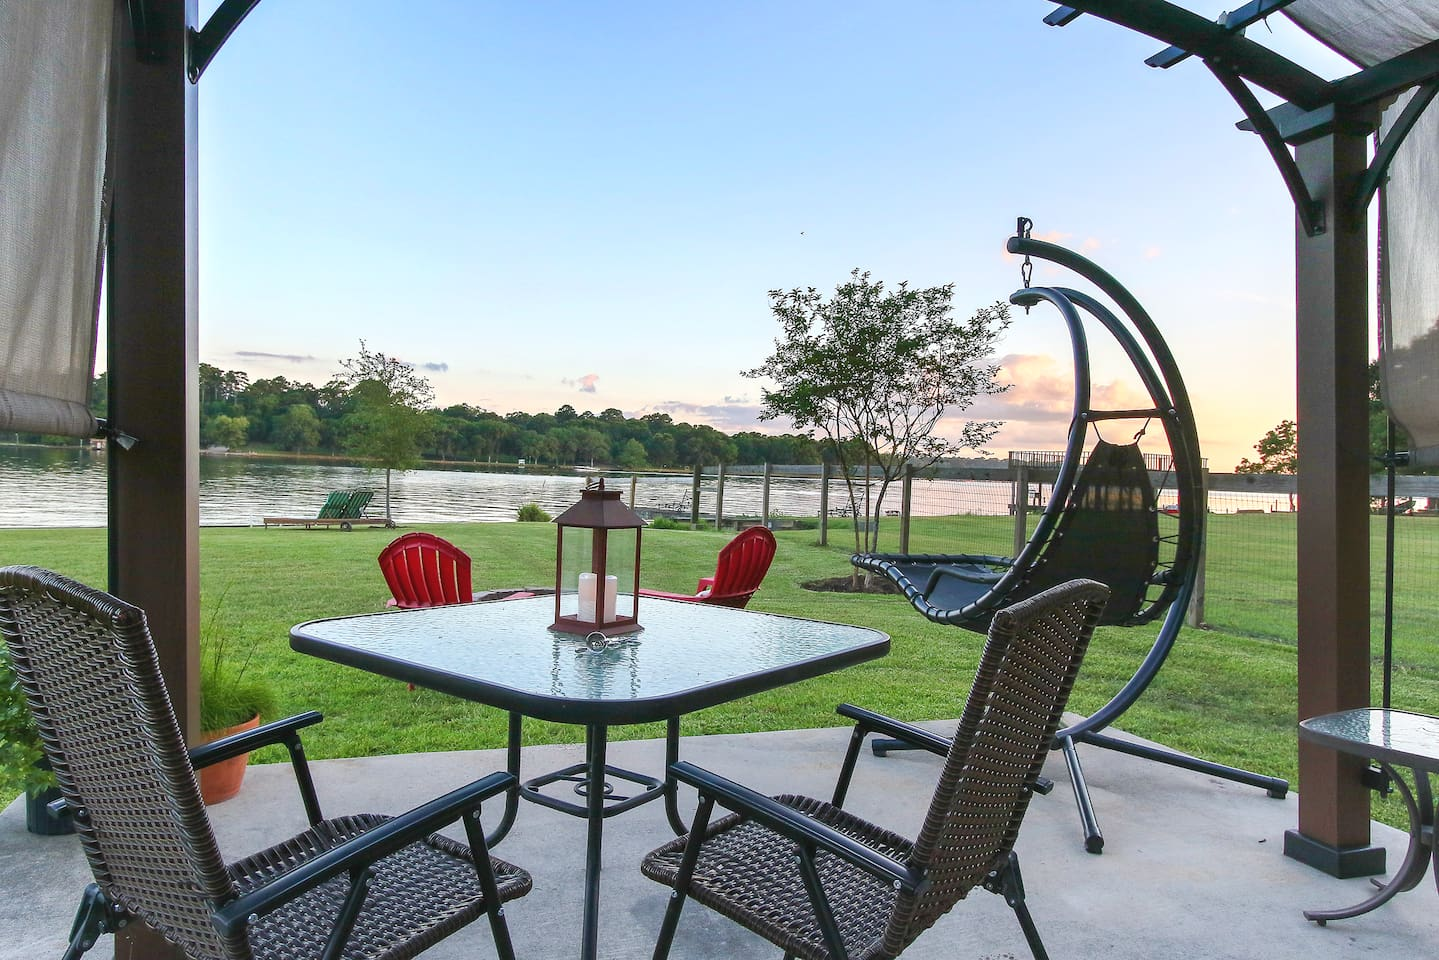 Sit Lakeside as you watch the sunset.  Back patio offers dual loungers, patio table with shade awning & four chairs,  Zero-Gravity Lounge Swing, charcoal grill & a personal fire pit.  This will be your new happy place!